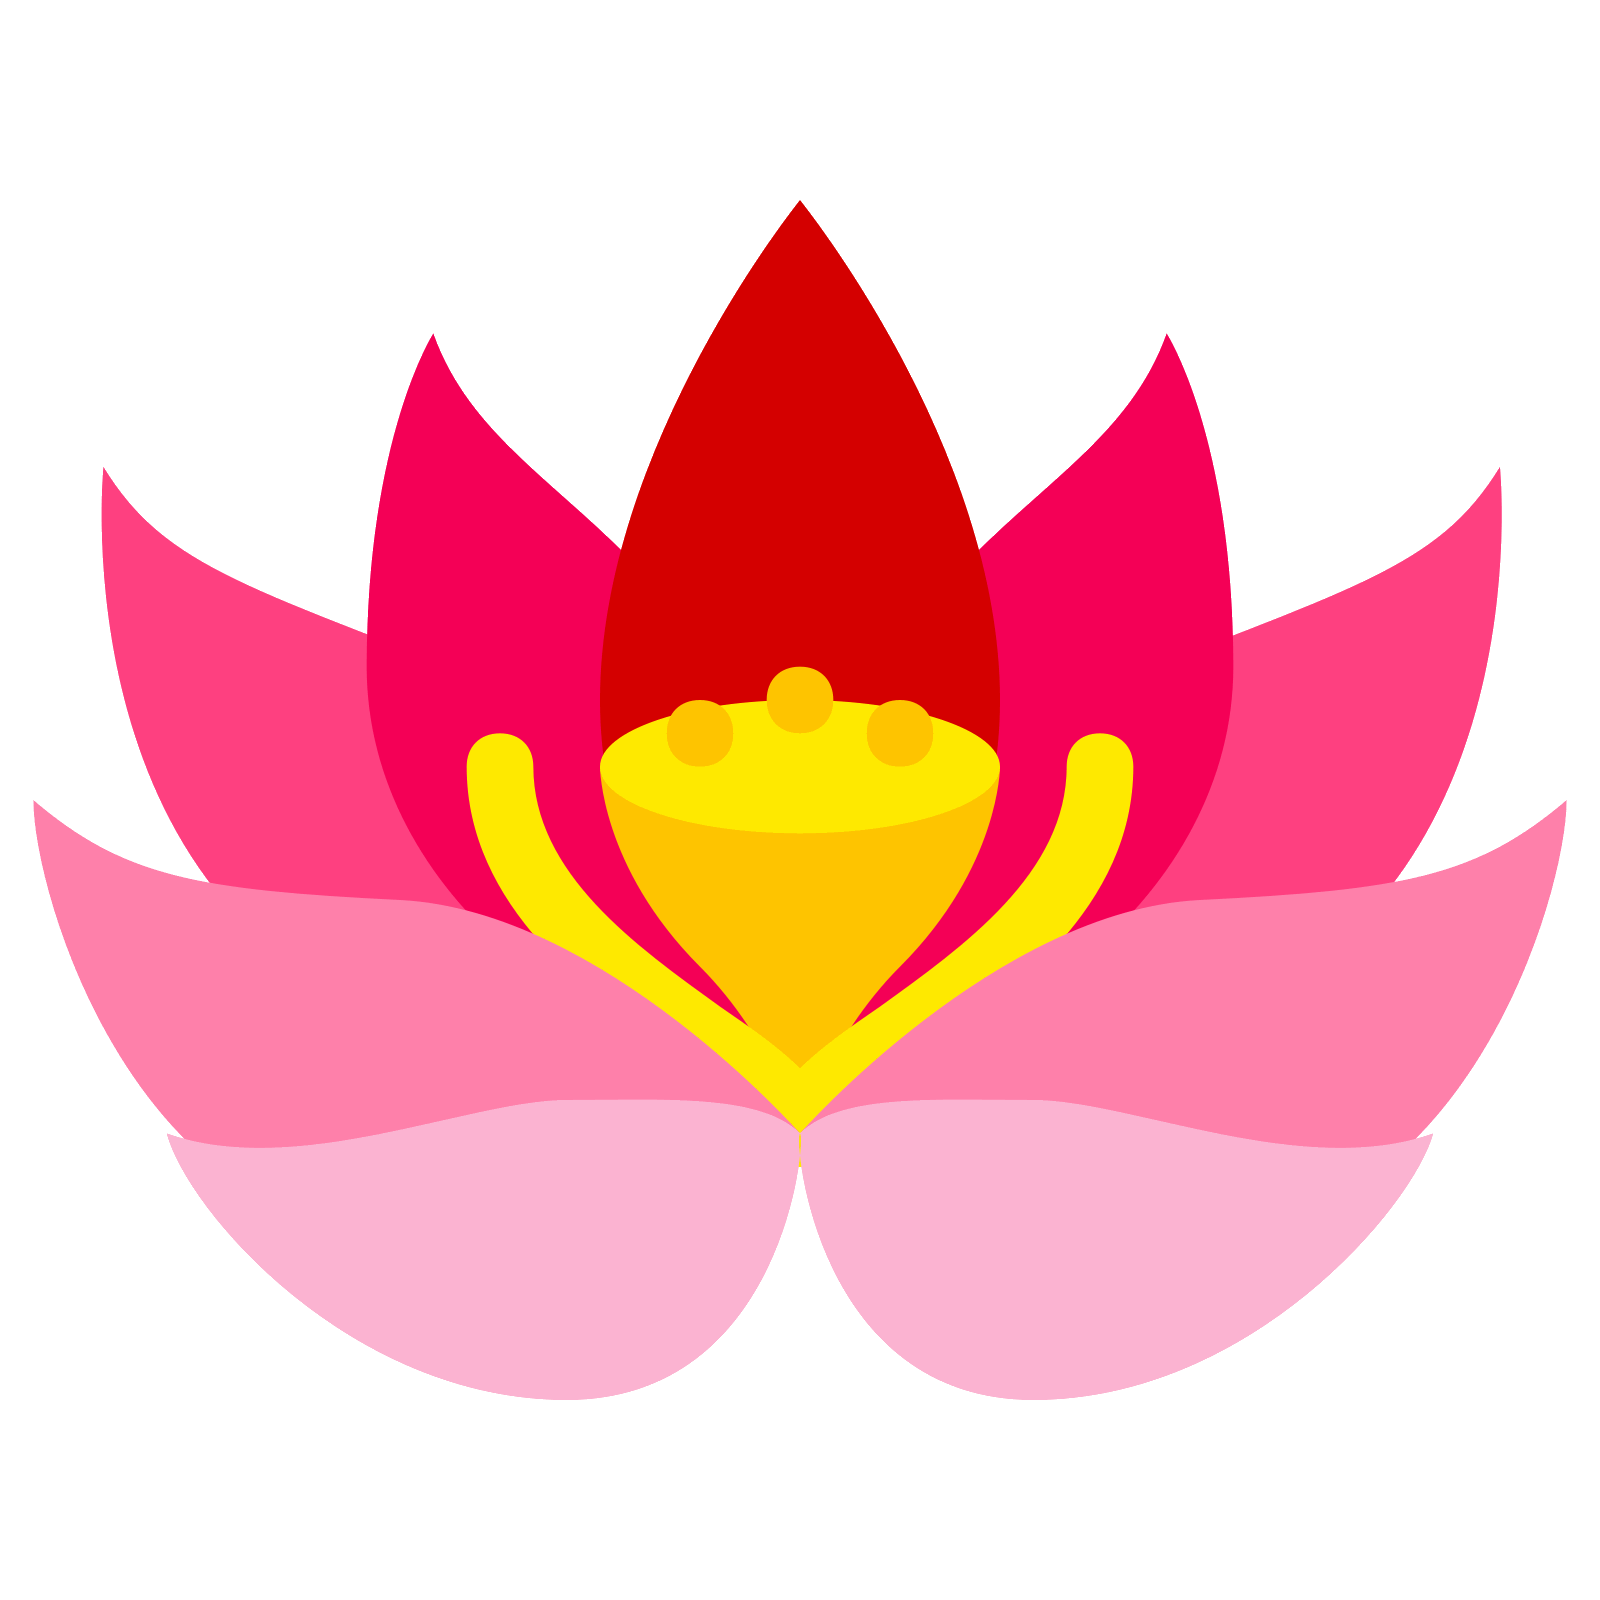 Lotus flower vector png. Icon free download and